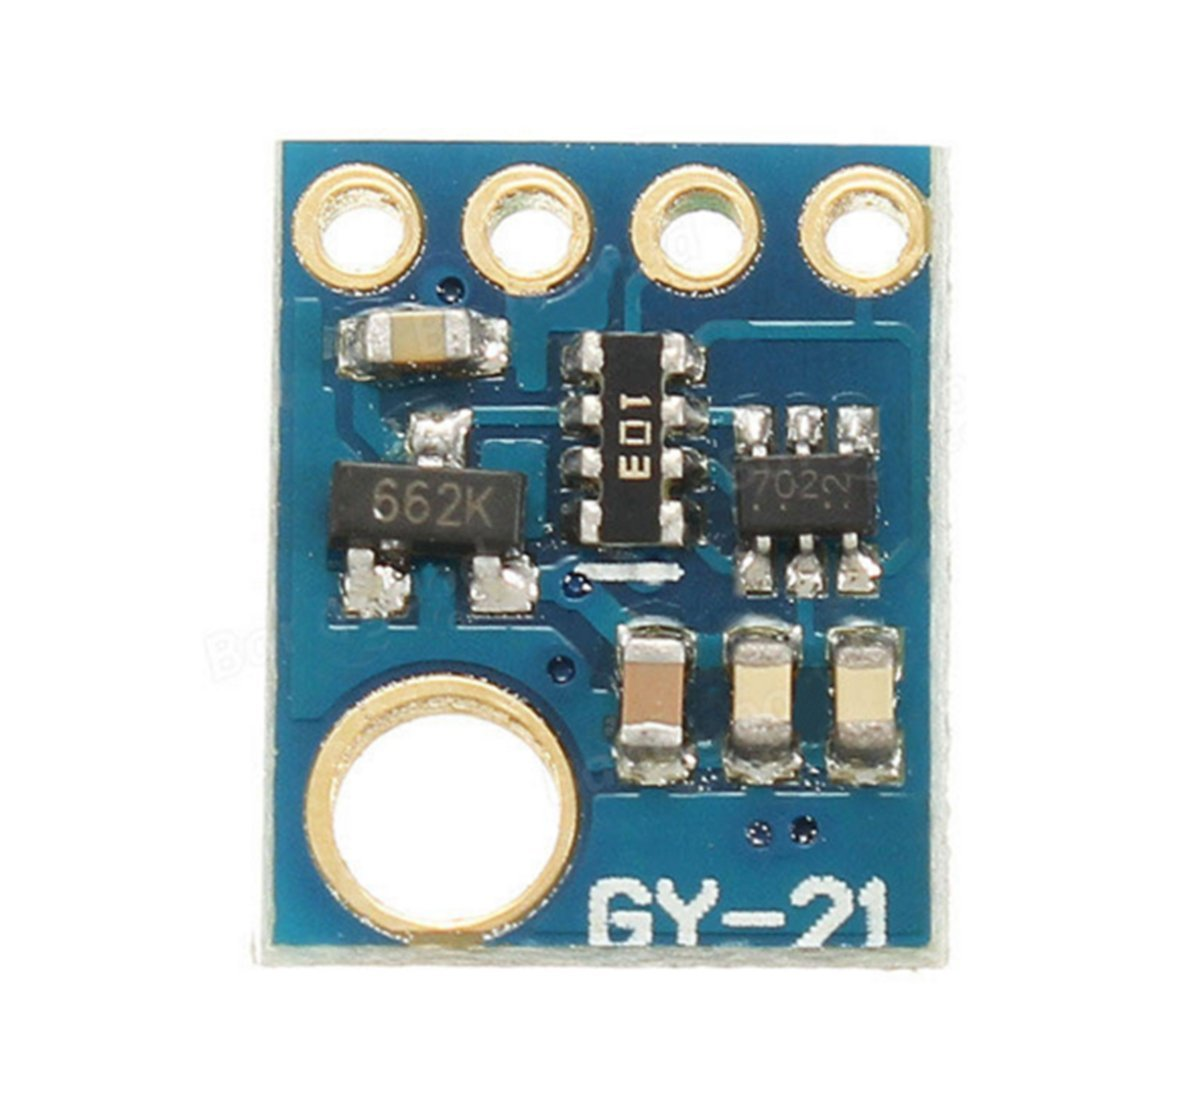 SHT21 HTU21 Digital Humidity Temperature Sensor Module Replace SHT11 SHT15